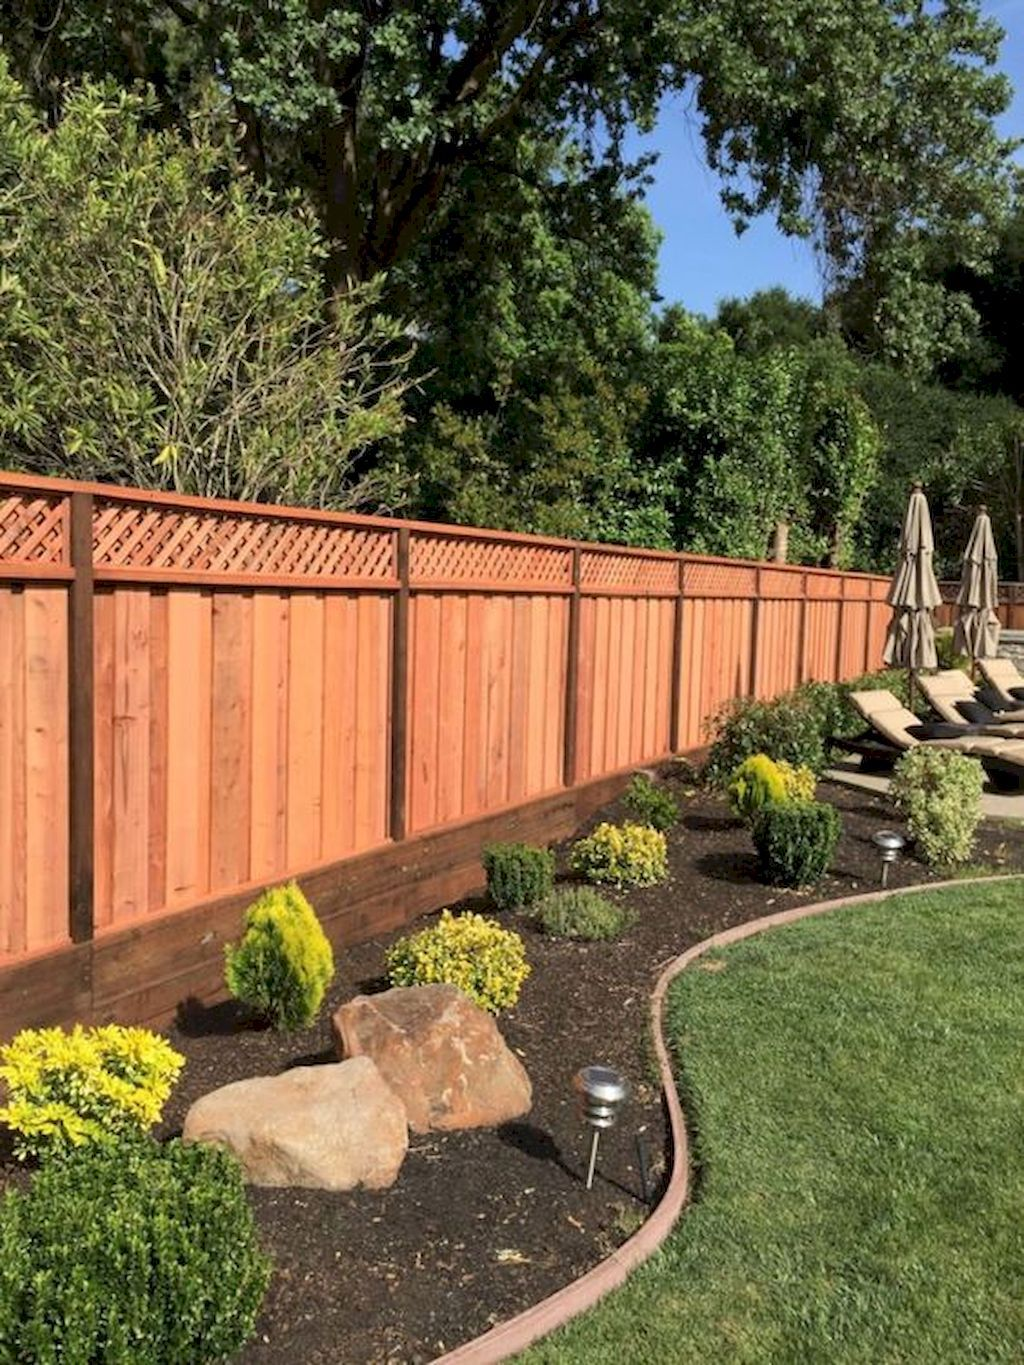 Fresh Backyard Design Ideas with Fences Can be Inspire